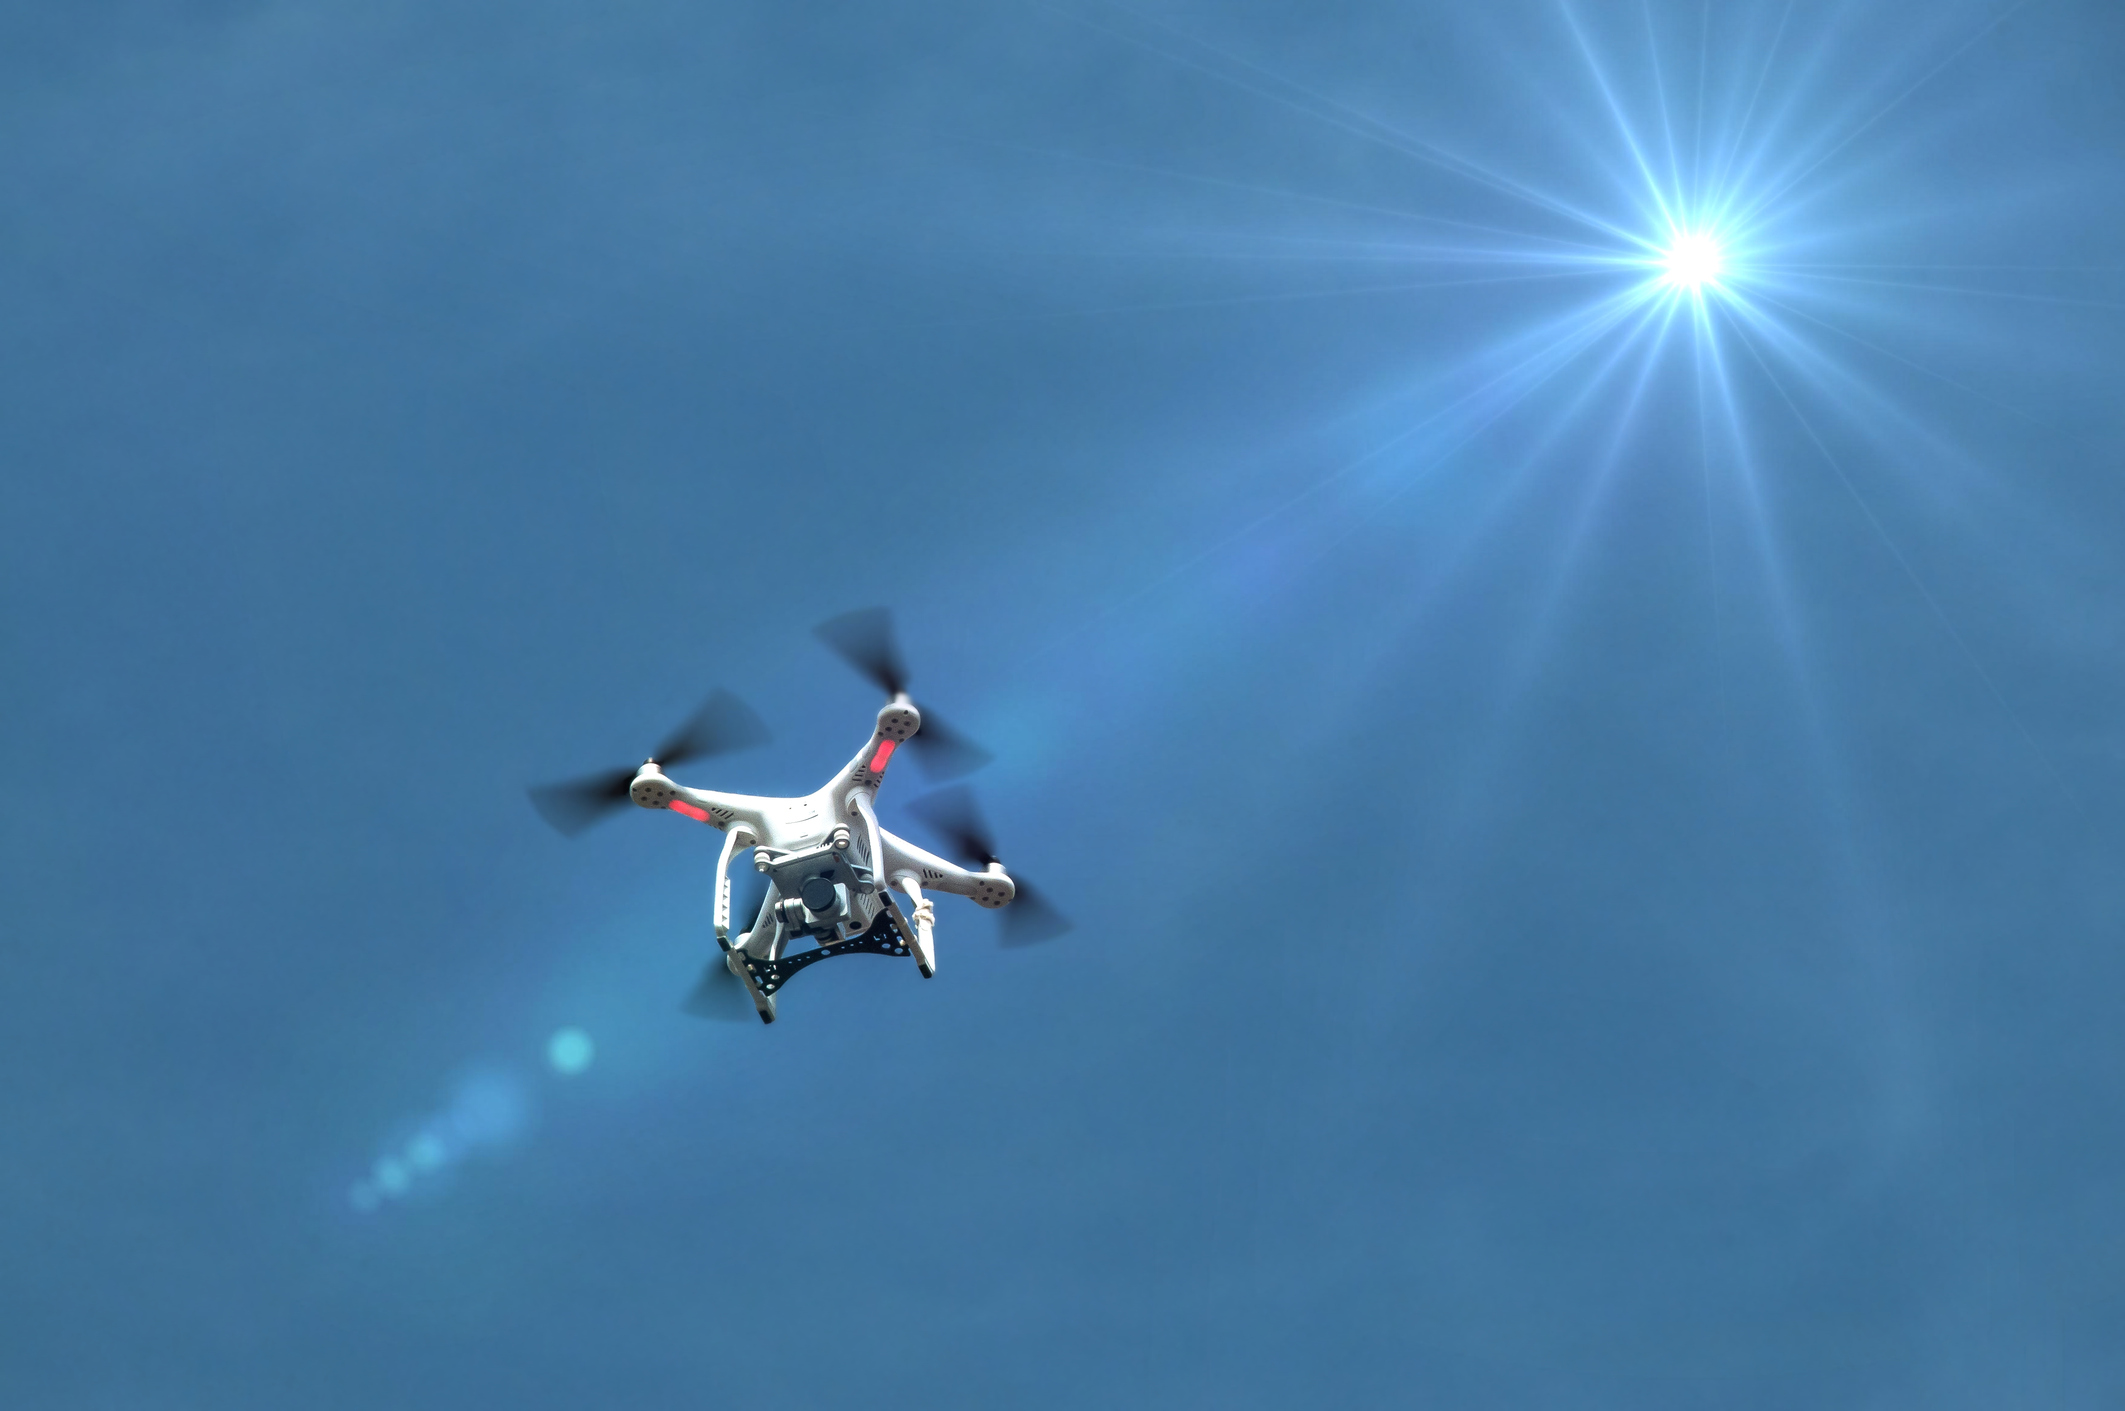 ENAIRE manages more than 1,000 drone operations in airspace